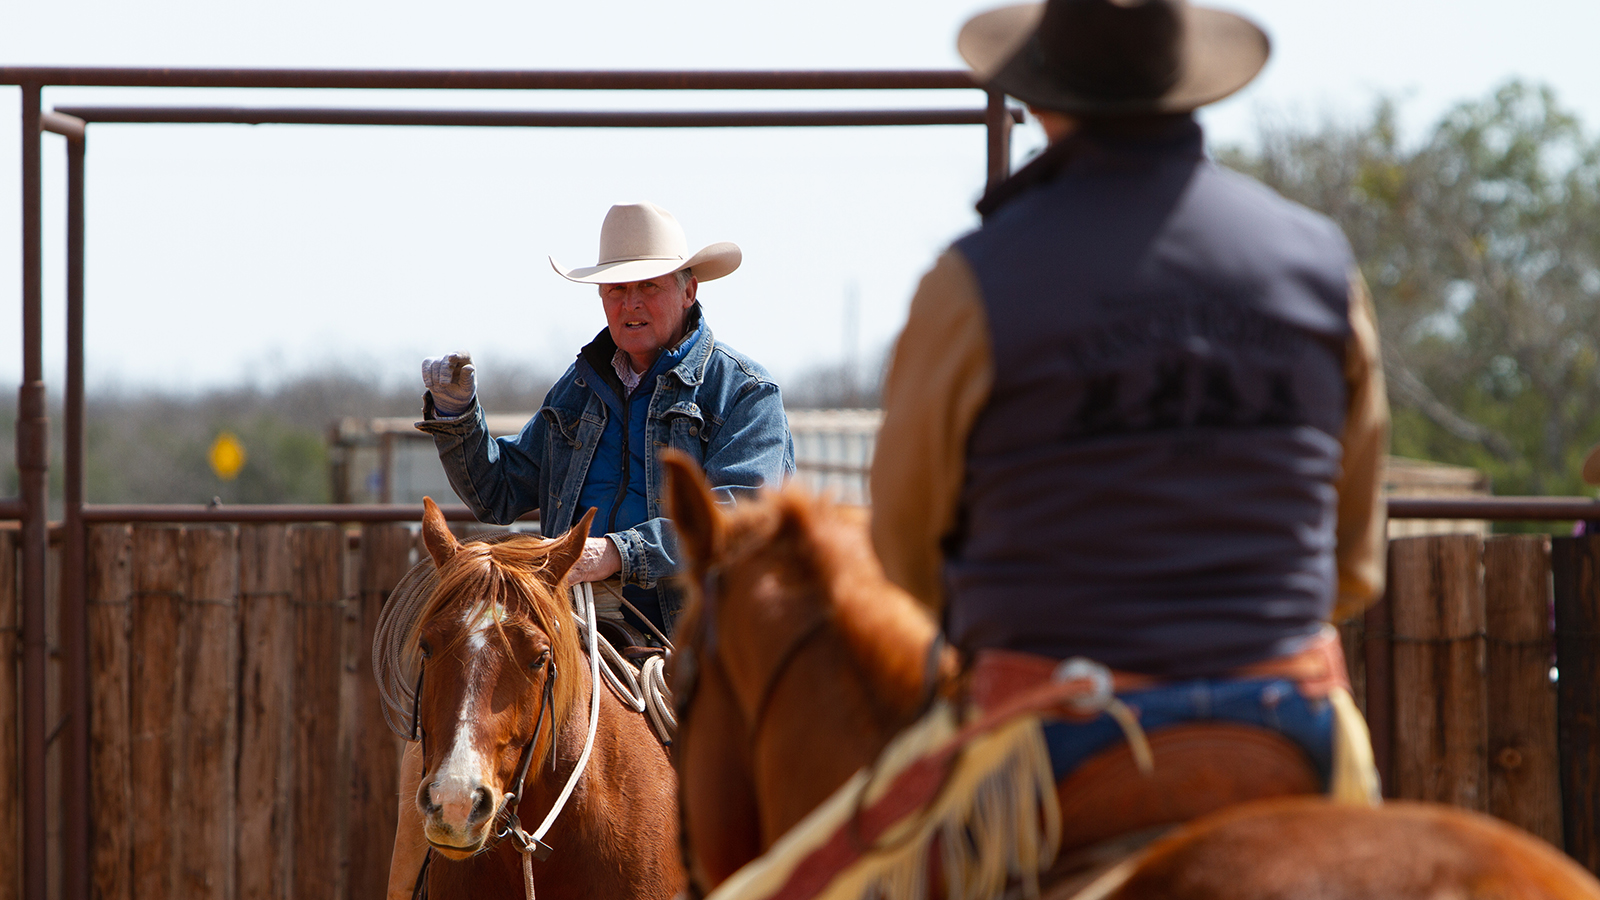 Joe Wolter shows how to straighten a rope horse.